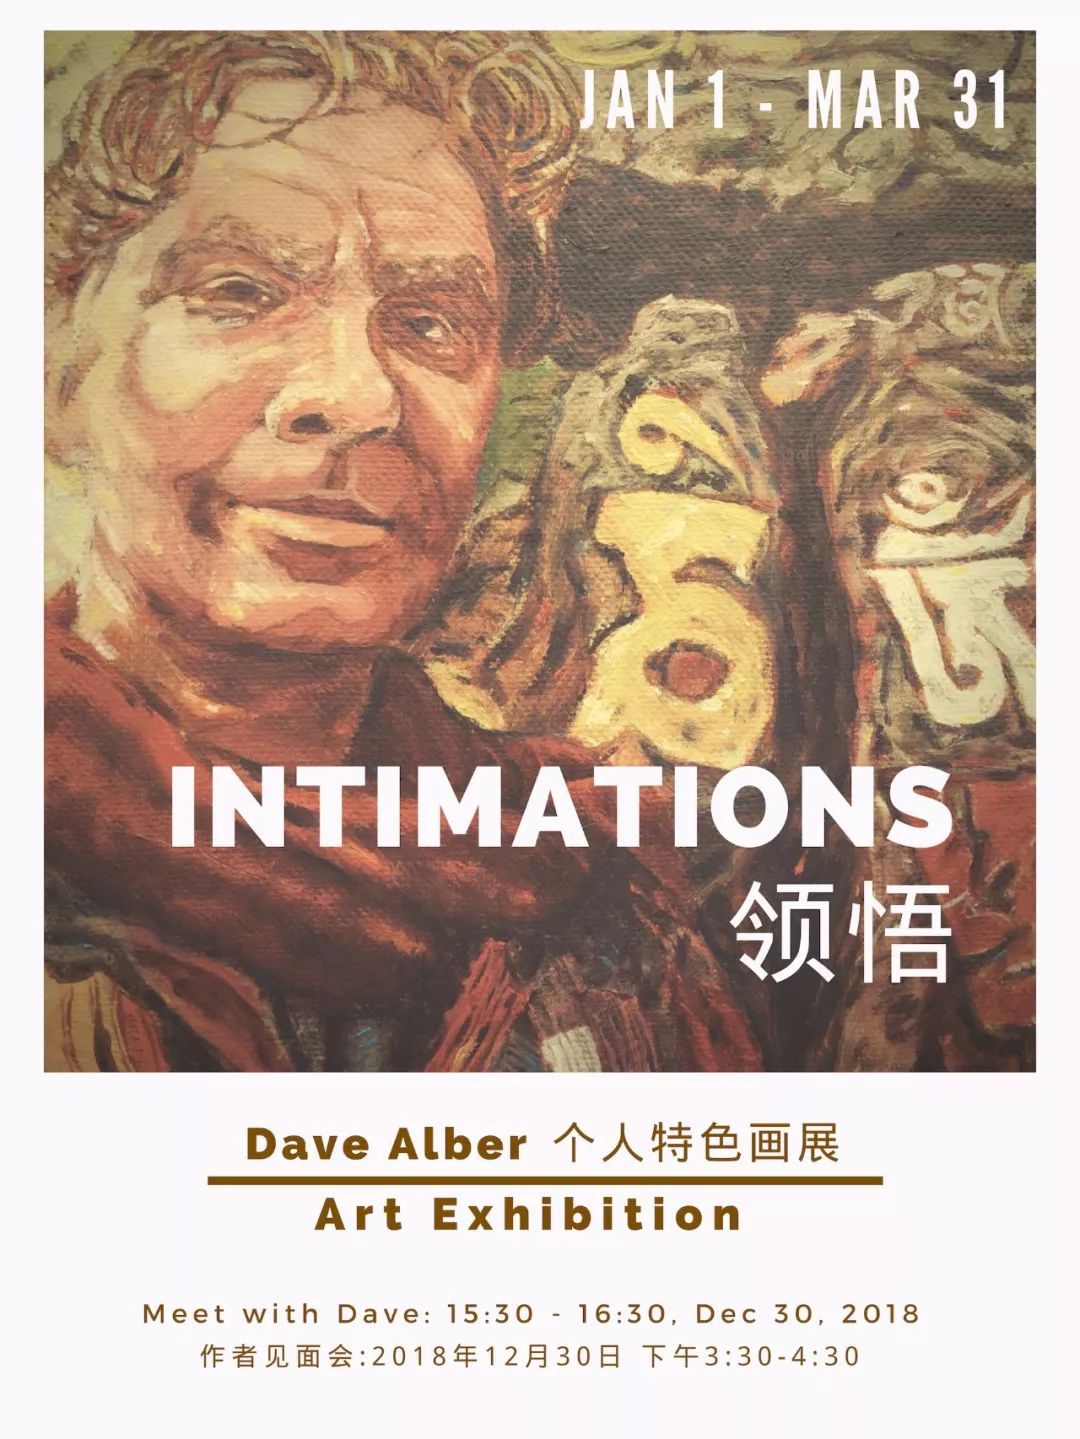 201901/Dave-Alber-Intimations-Kunshan-Kunchef-travel-art1.jpg